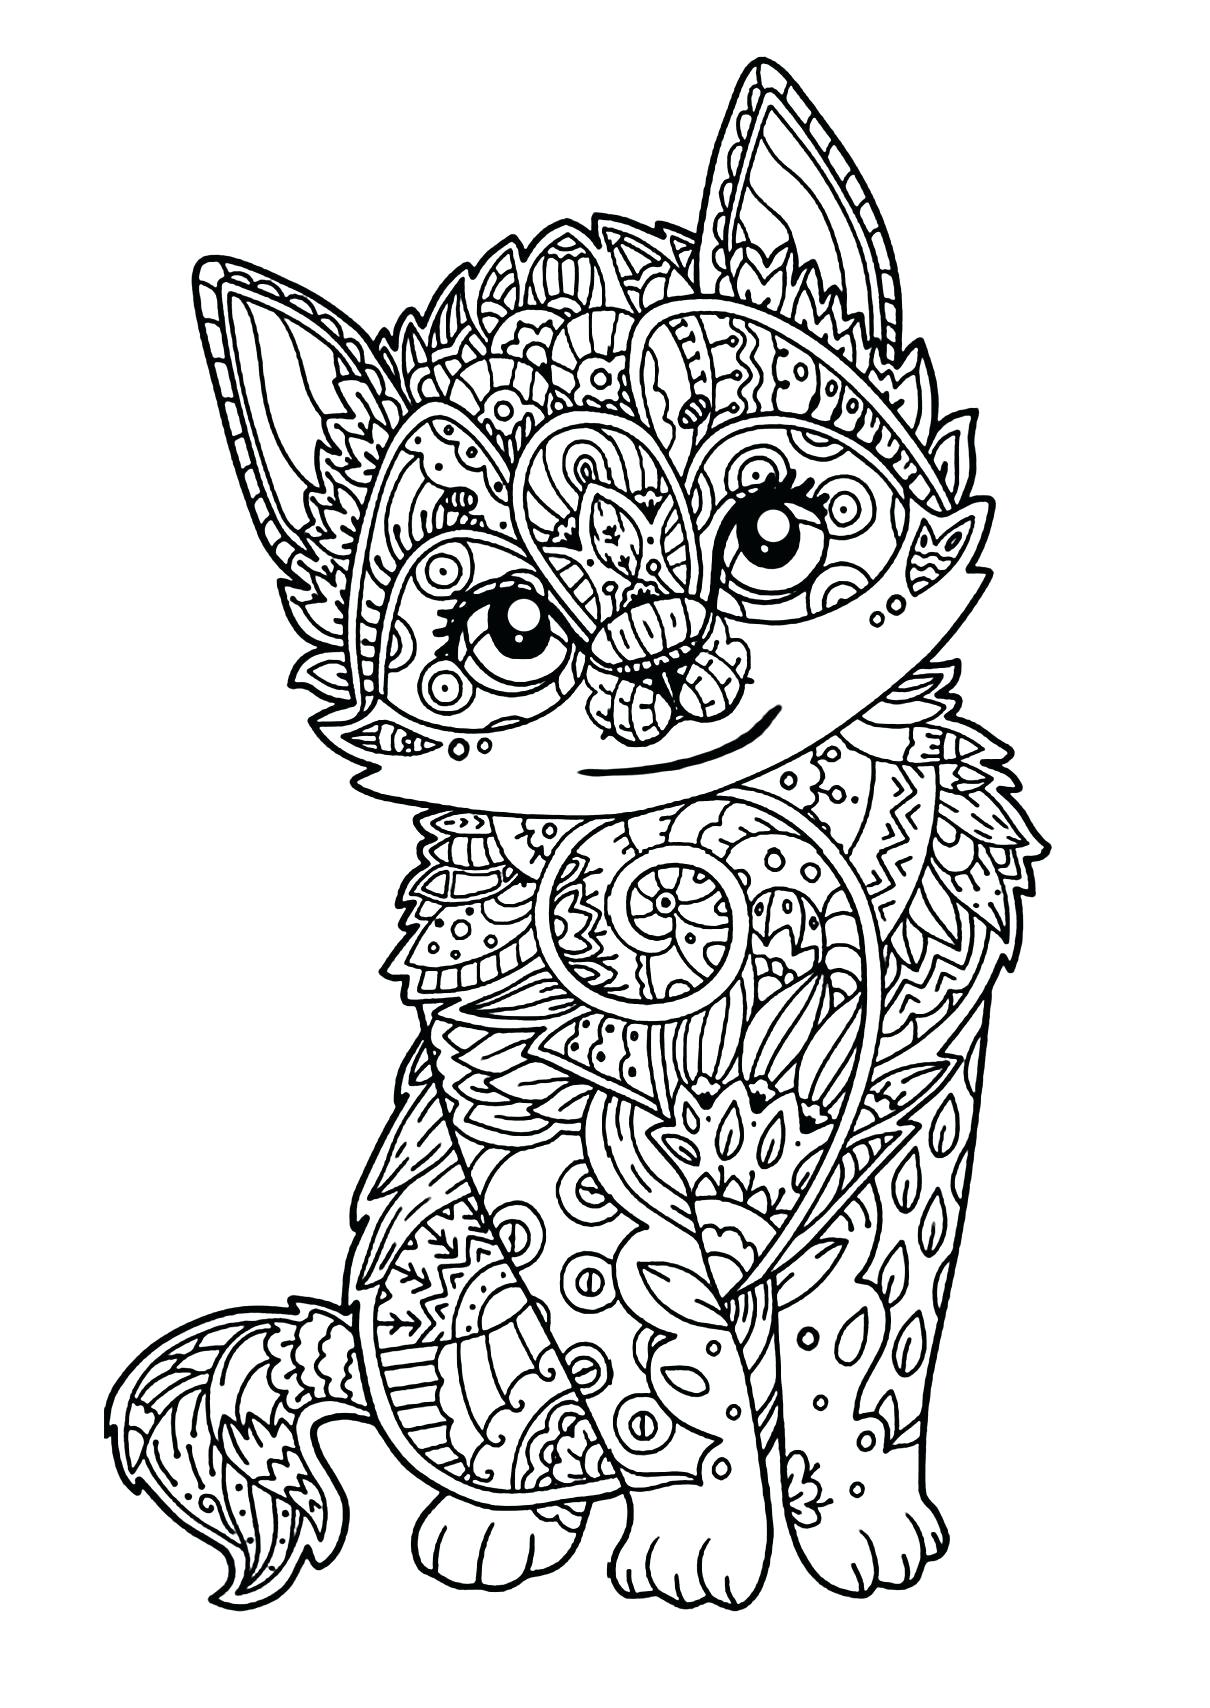 1210x1708 Coloring Tabby Cat Coloring Pages Drawing Kitty Cute Easy